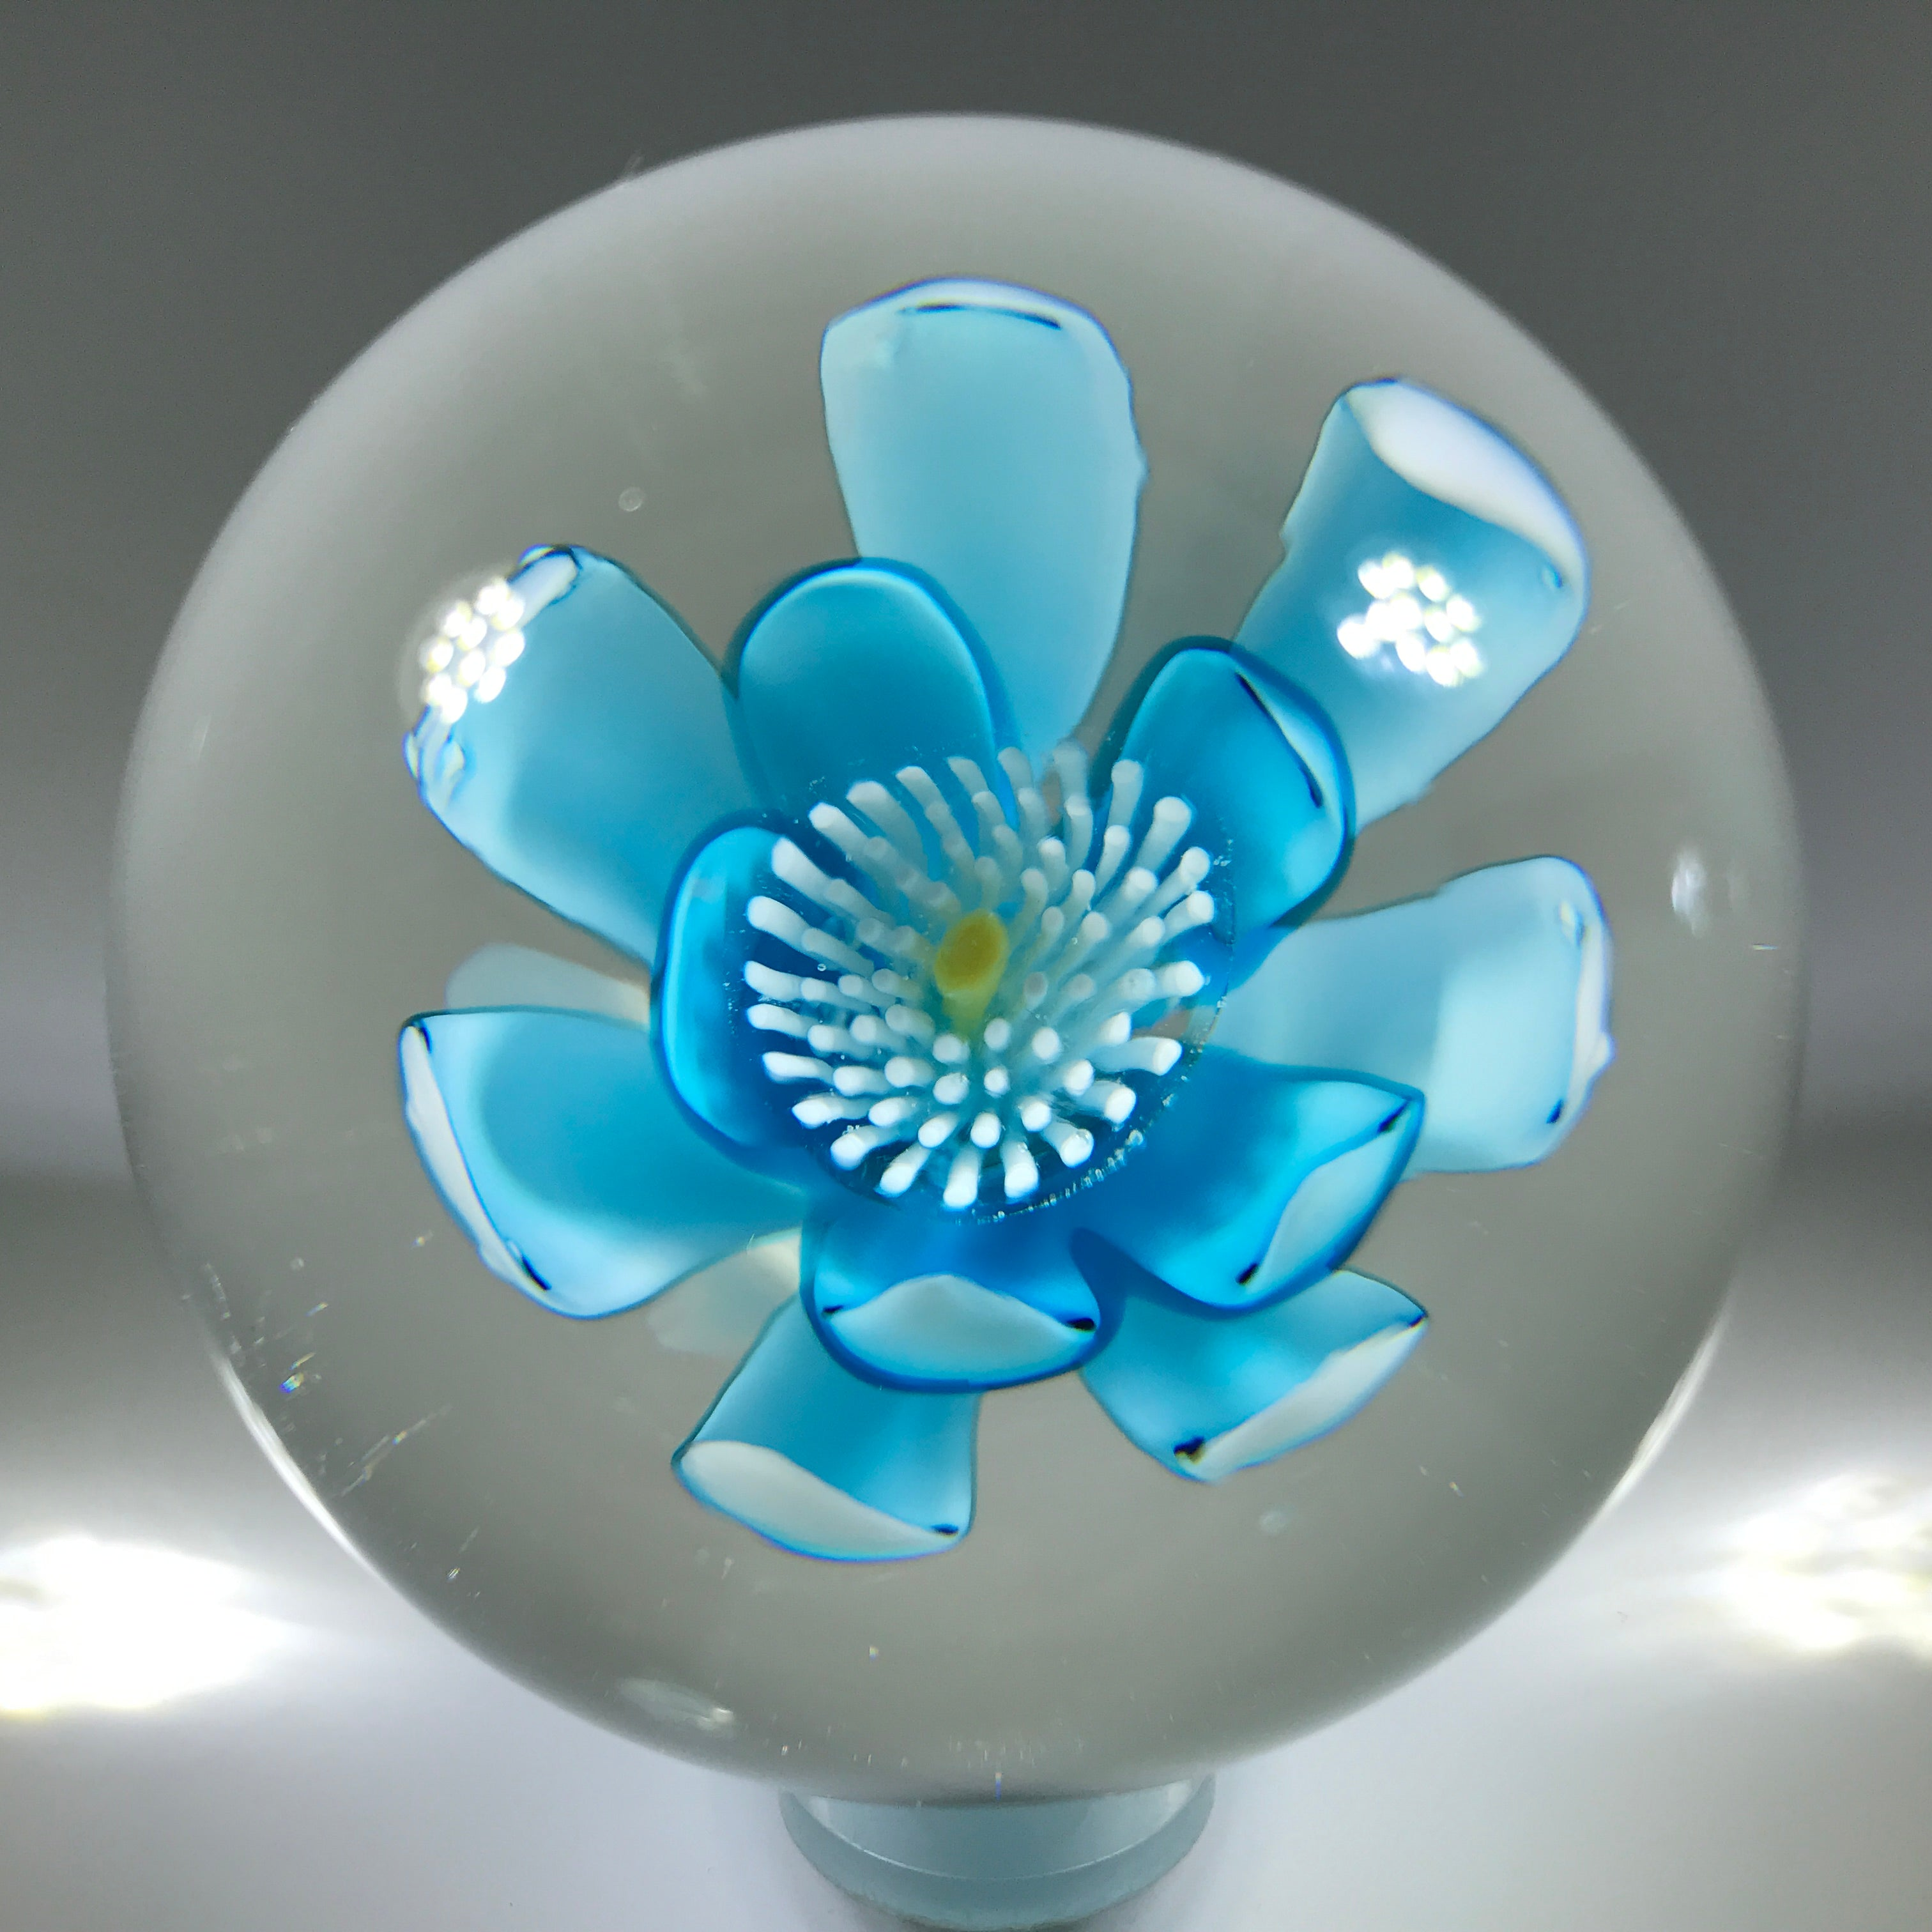 Vintage Murano Art Glass Paperweight Crimp Rose Style Blue Flower